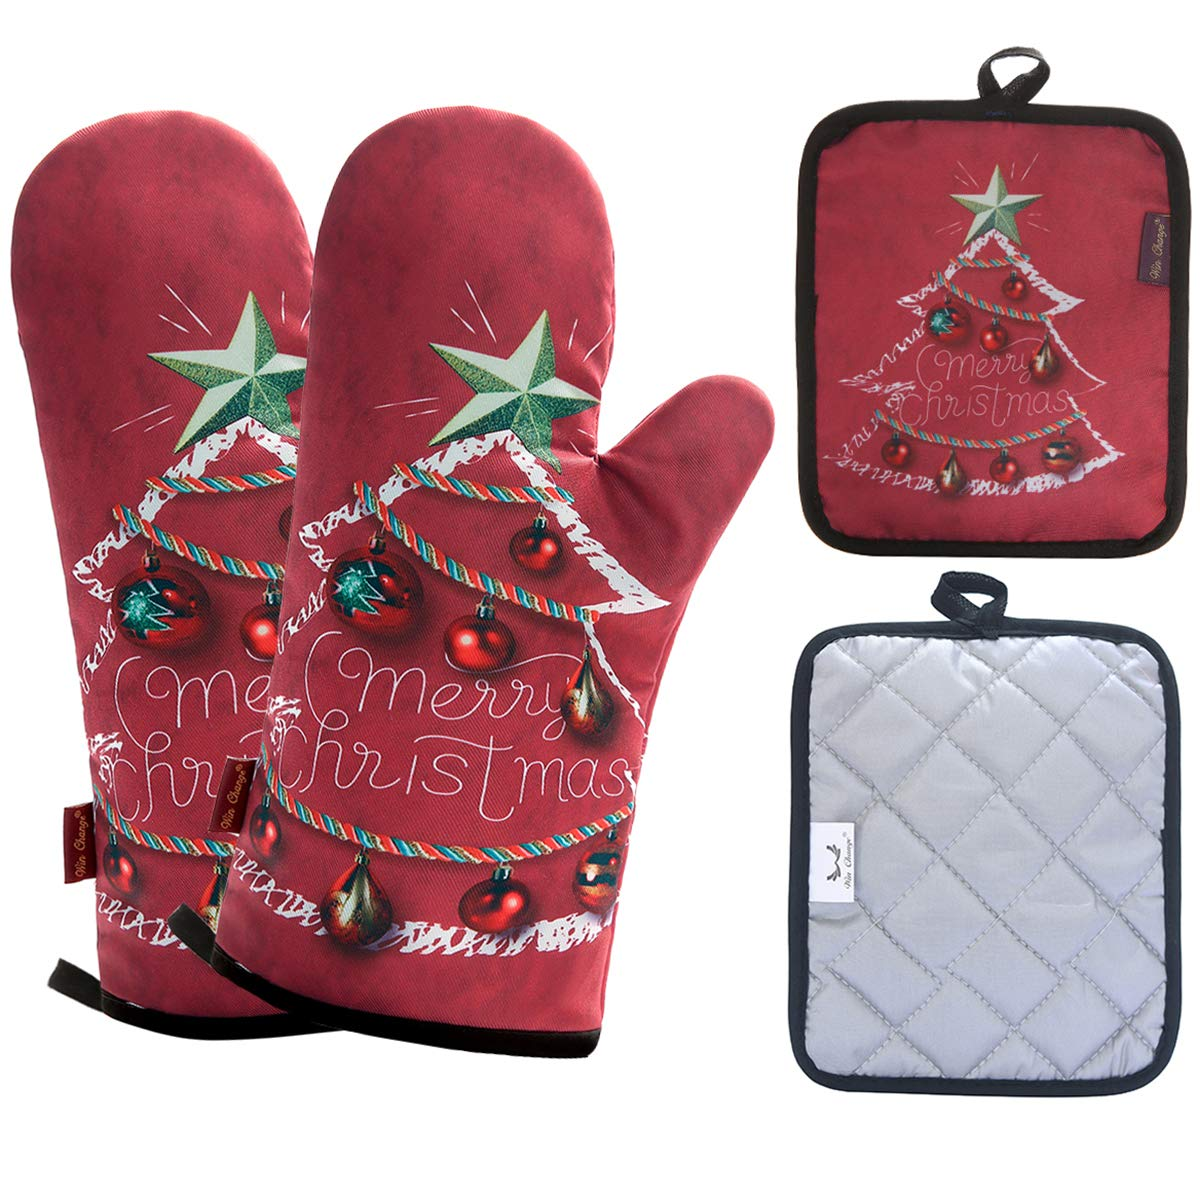 Win Change Oven Mitts and Potholders Christmas-Pot Holders and Oven Mitts Heat Resistant with Recycled Cotton Infill Silicone Non-Slip Cooking Gloves for Cooking Baking Grilling (4-Piece Set) (Red)